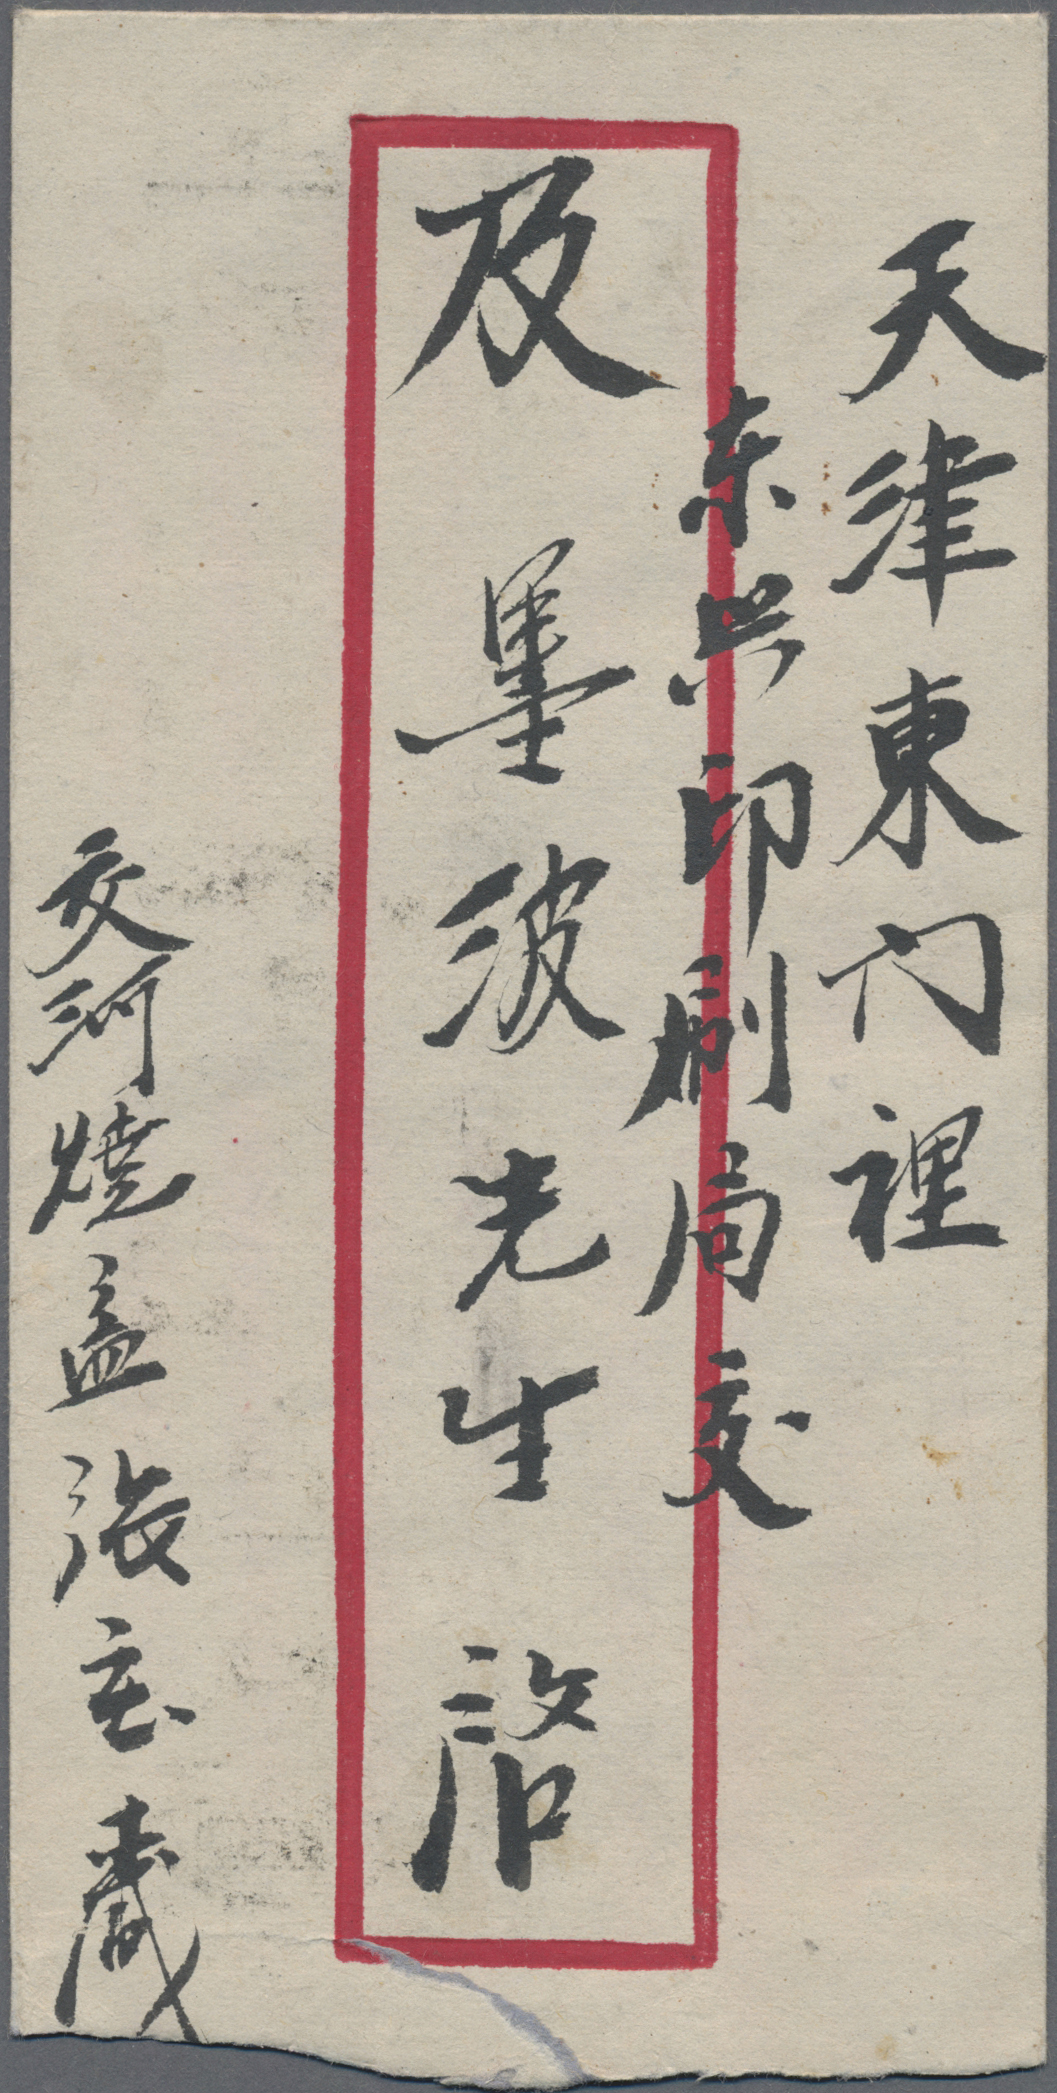 Lot 05007 - China - Volksrepublik - Provinzen  -  Auktionshaus Christoph Gärtner GmbH & Co. KG Sale #46 Special Auction China - including Liberated Areas